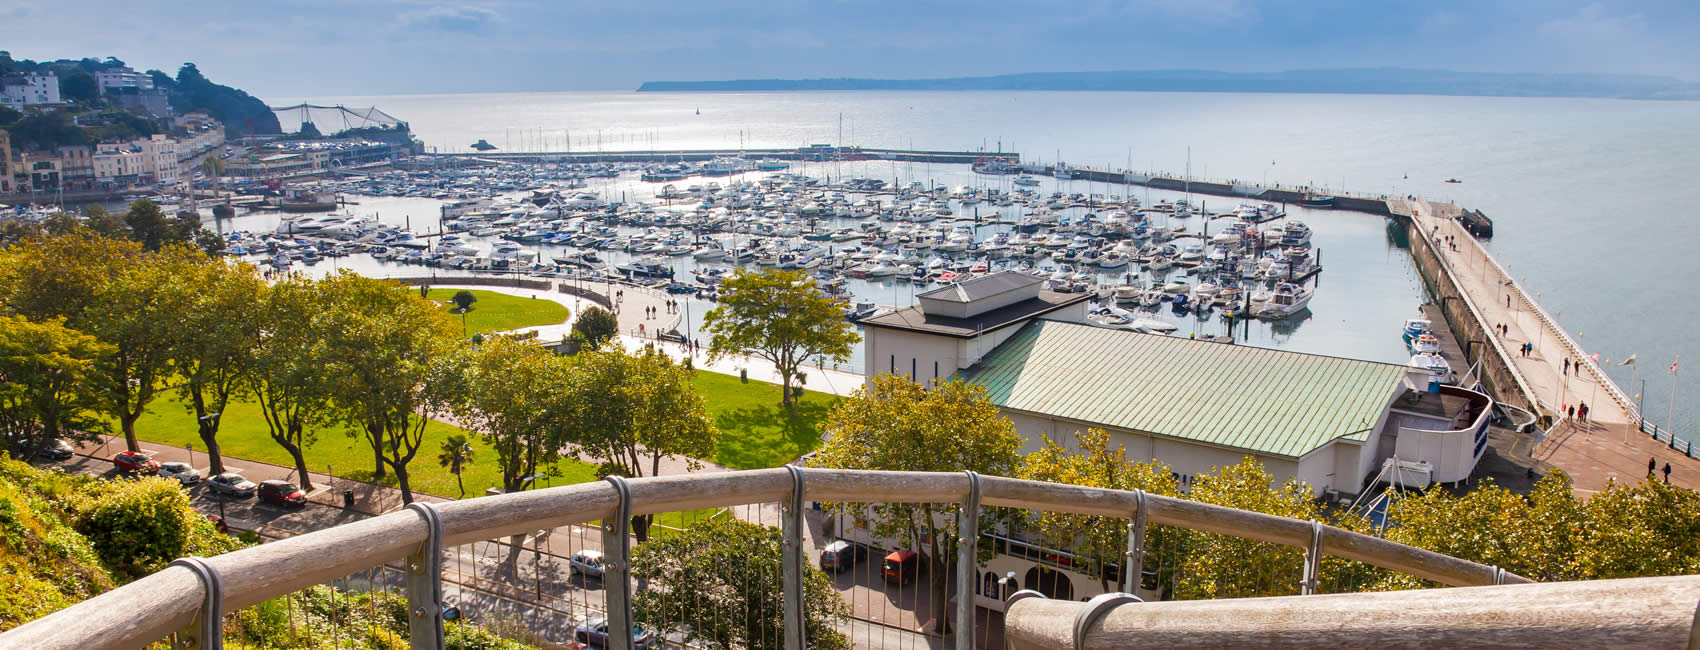 The harbour and marina of Torquay in Devon